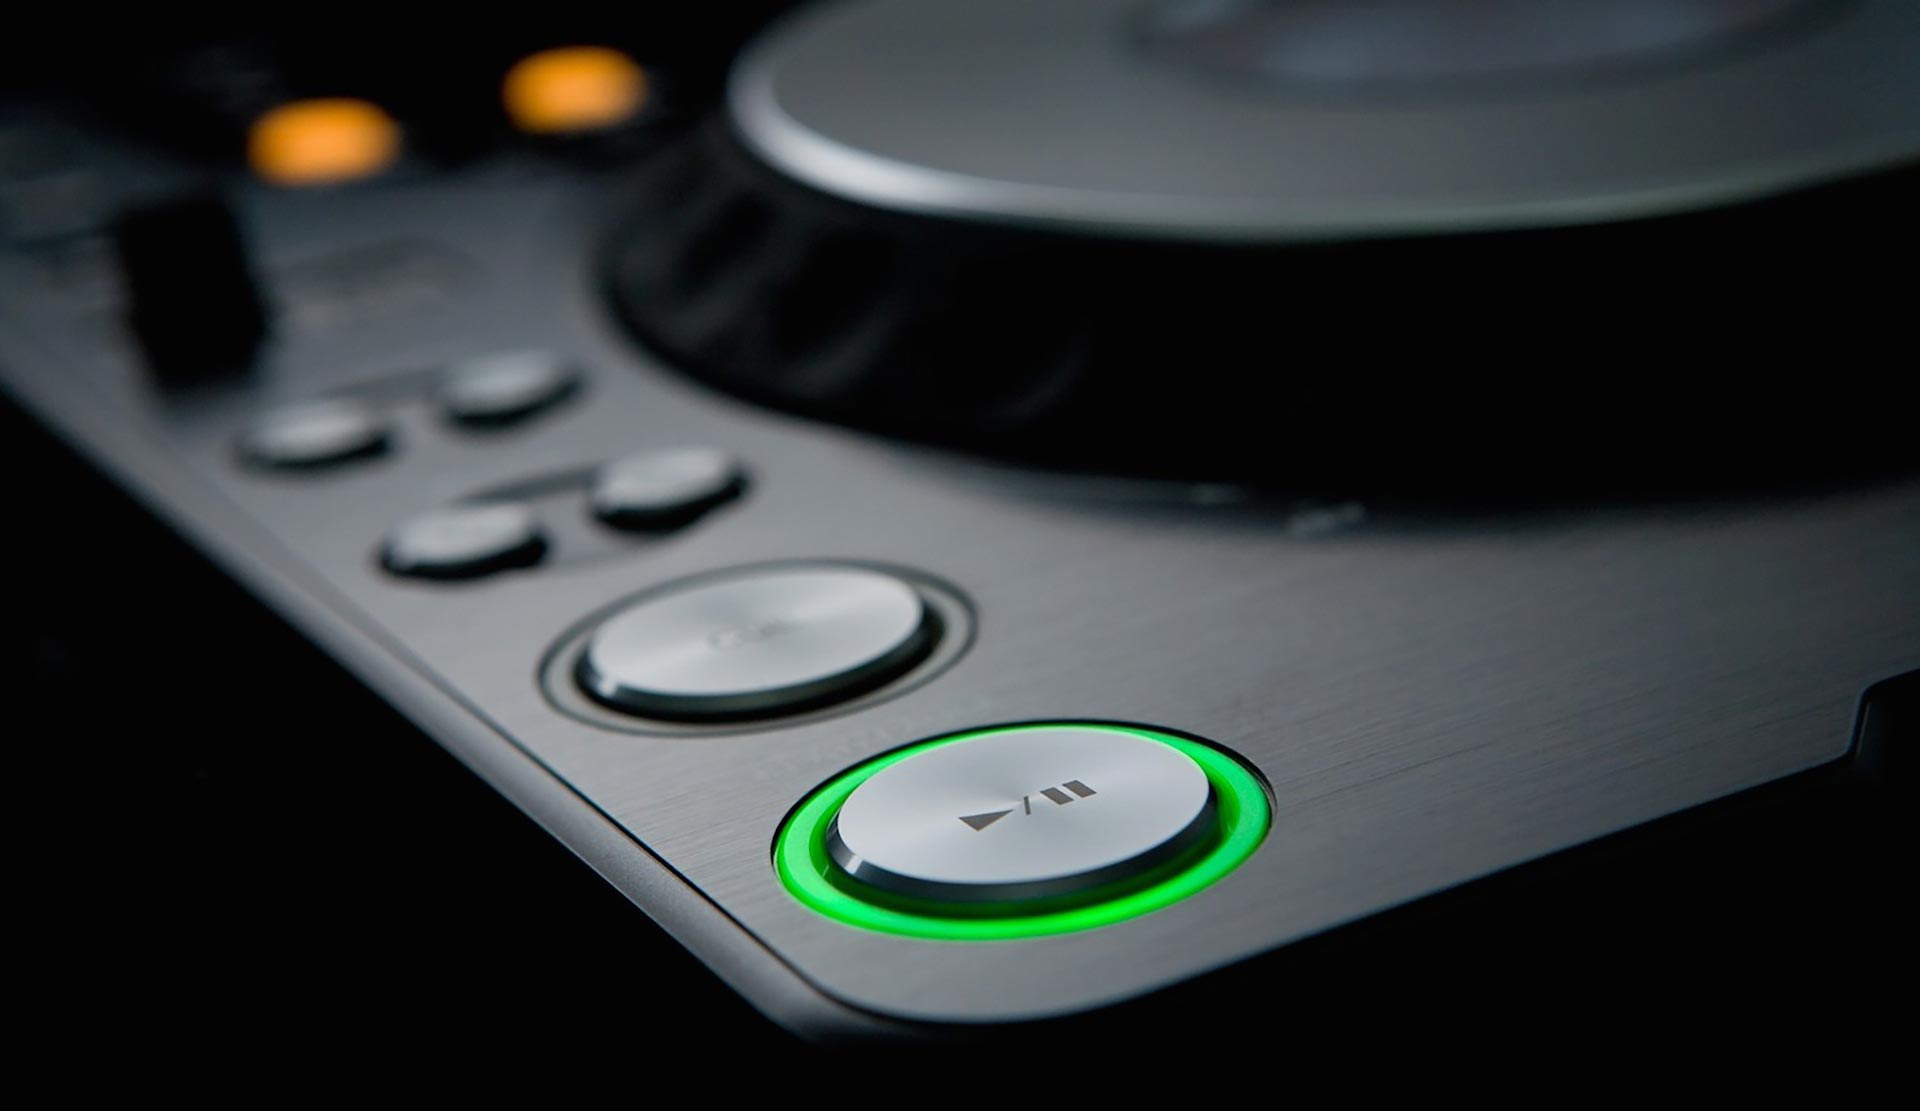 Button on the CDJ doesn't work 1